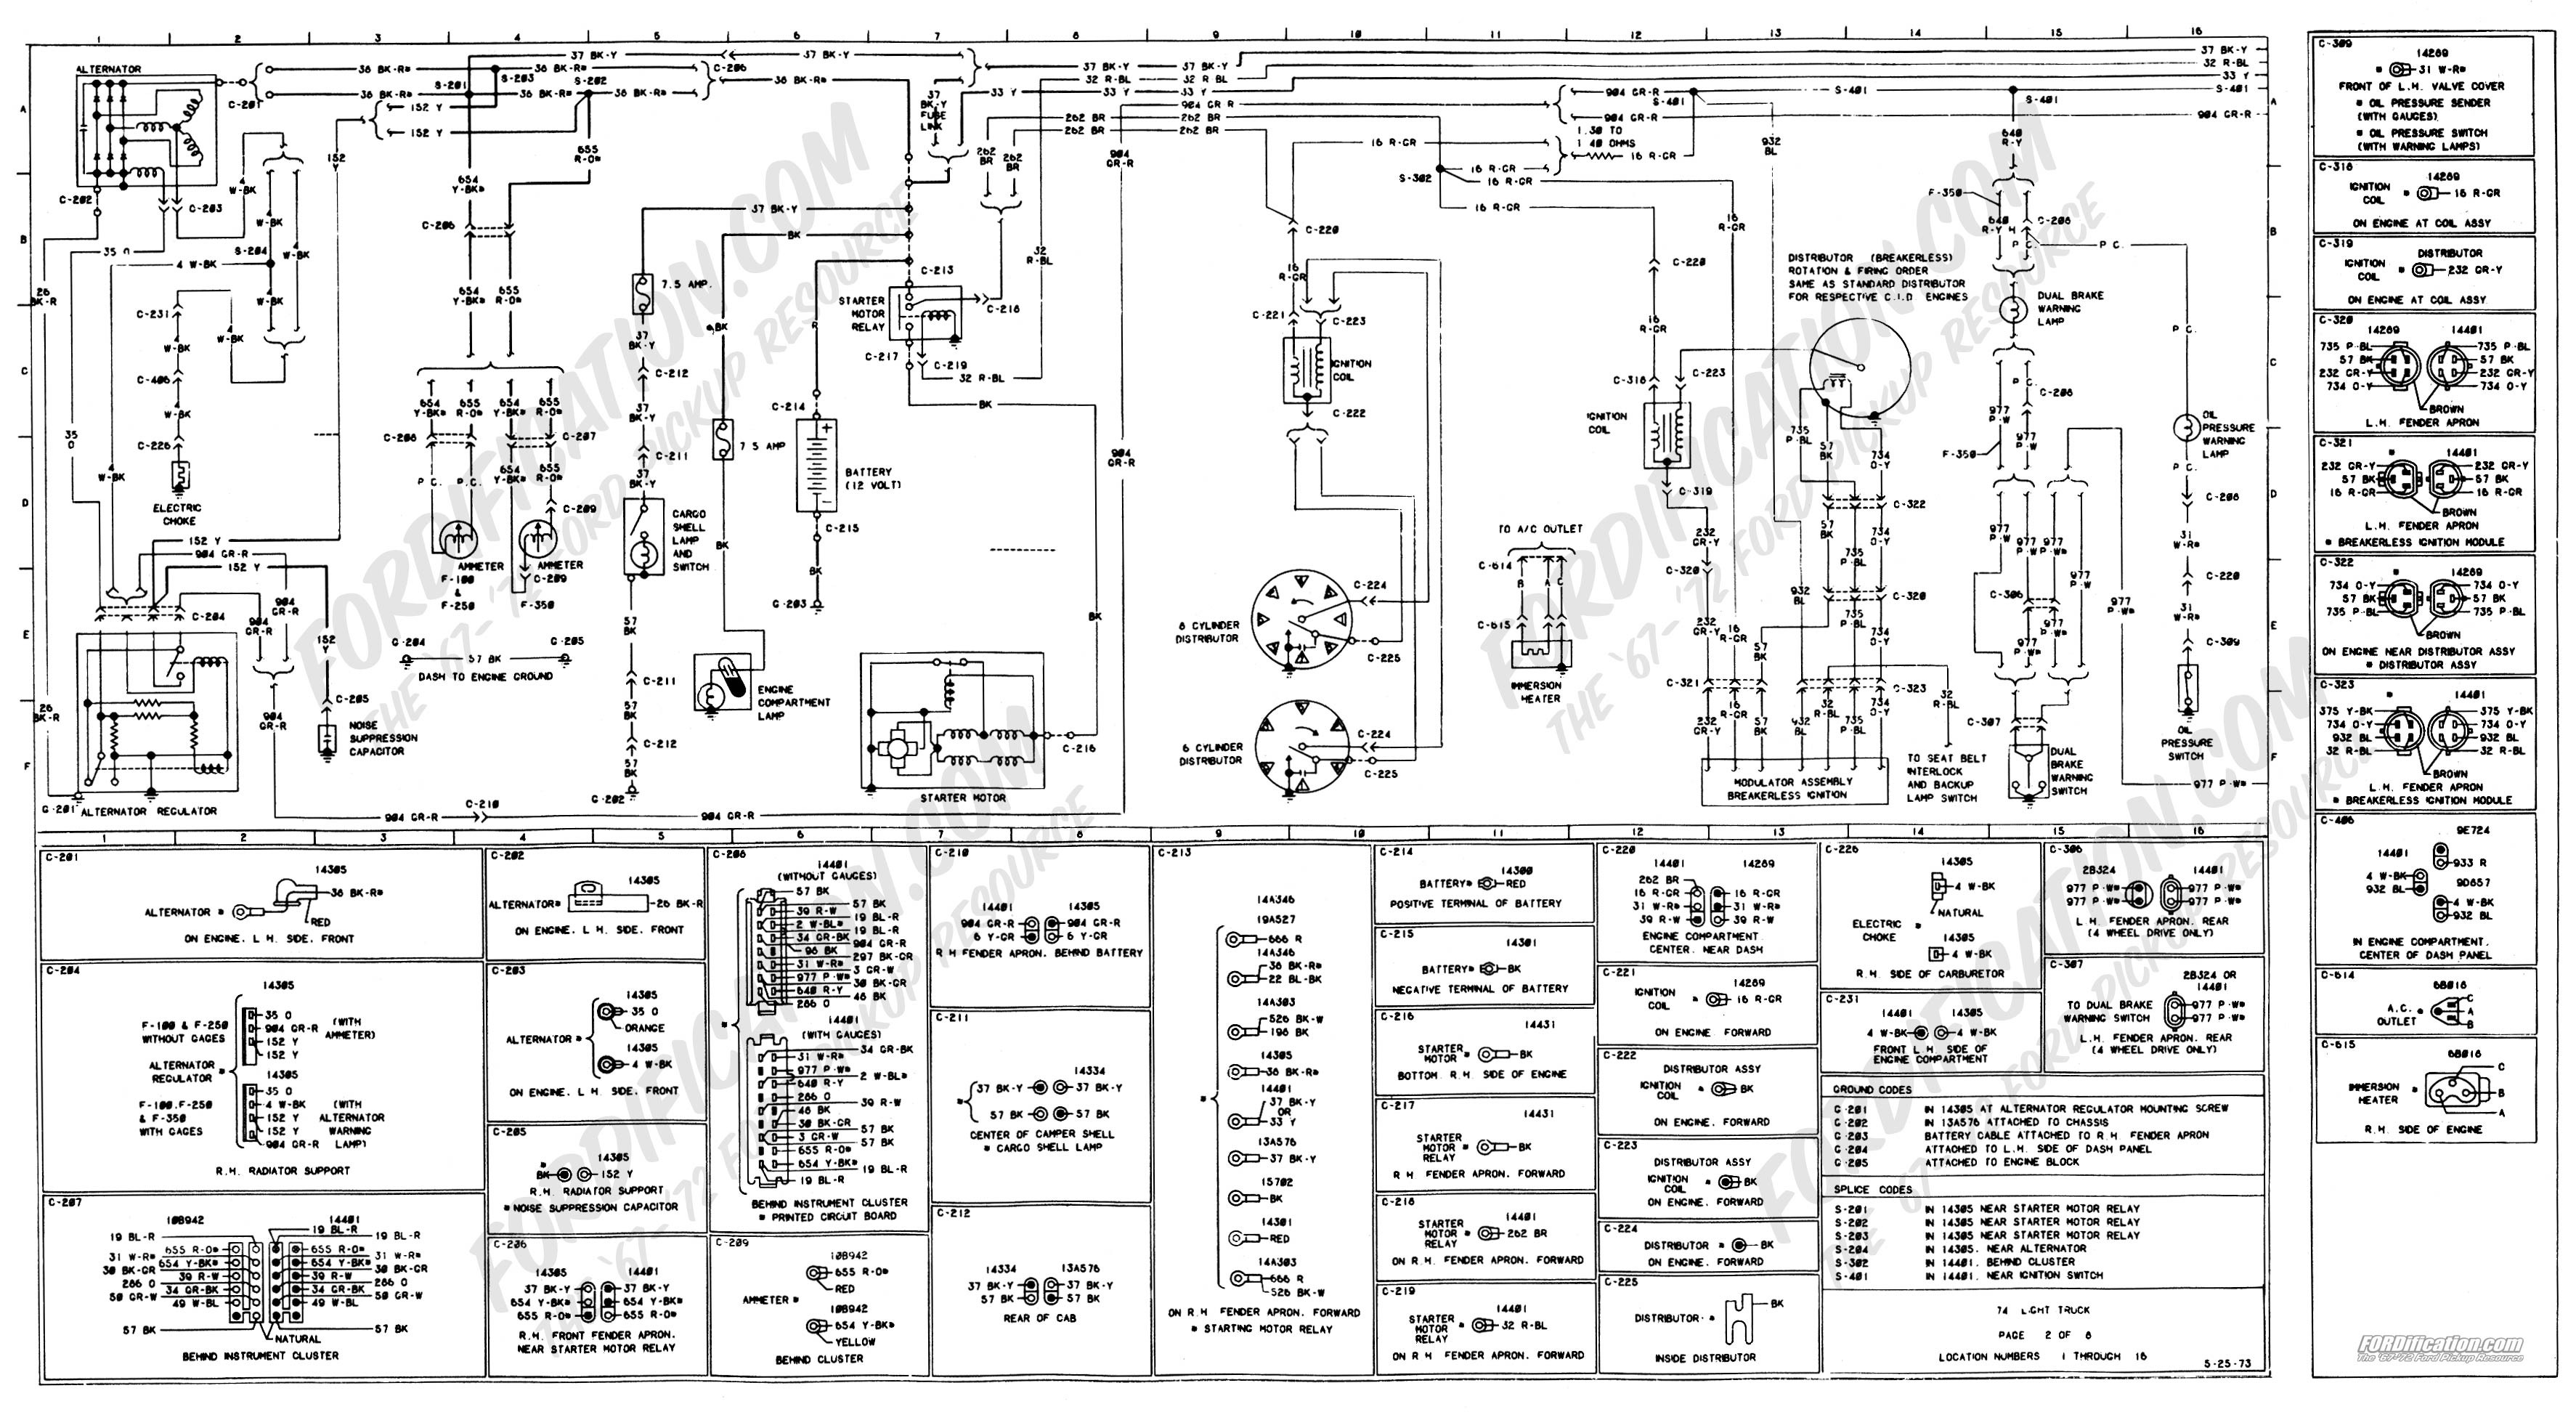 1990 Ford F800 Wiring Diagram - Data Wiring Diagrams • Wiring Diagram Ford F Truck on 1990 ford f700 wiring diagram, 1990 ford e350 wiring diagram, 1990 ford pickup wiring diagram, 1990 ford festiva wiring diagram, 1990 ford f-150 wiring diagram, 1990 ford tempo wiring diagram, 1990 ford f-350 wiring diagram, 1990 ford taurus wiring diagram, 1990 ford bronco wiring diagram, 1990 ford f600 wiring diagram, 1990 ford aerostar wiring diagram, 1990 ford l8000 wiring diagram, 1990 ford e150 wiring diagram, 1990 ford thunderbird wiring diagram, 1990 ford probe wiring diagram, 1990 ford l9000 wiring diagram, 1990 ford f-250 wiring diagram,